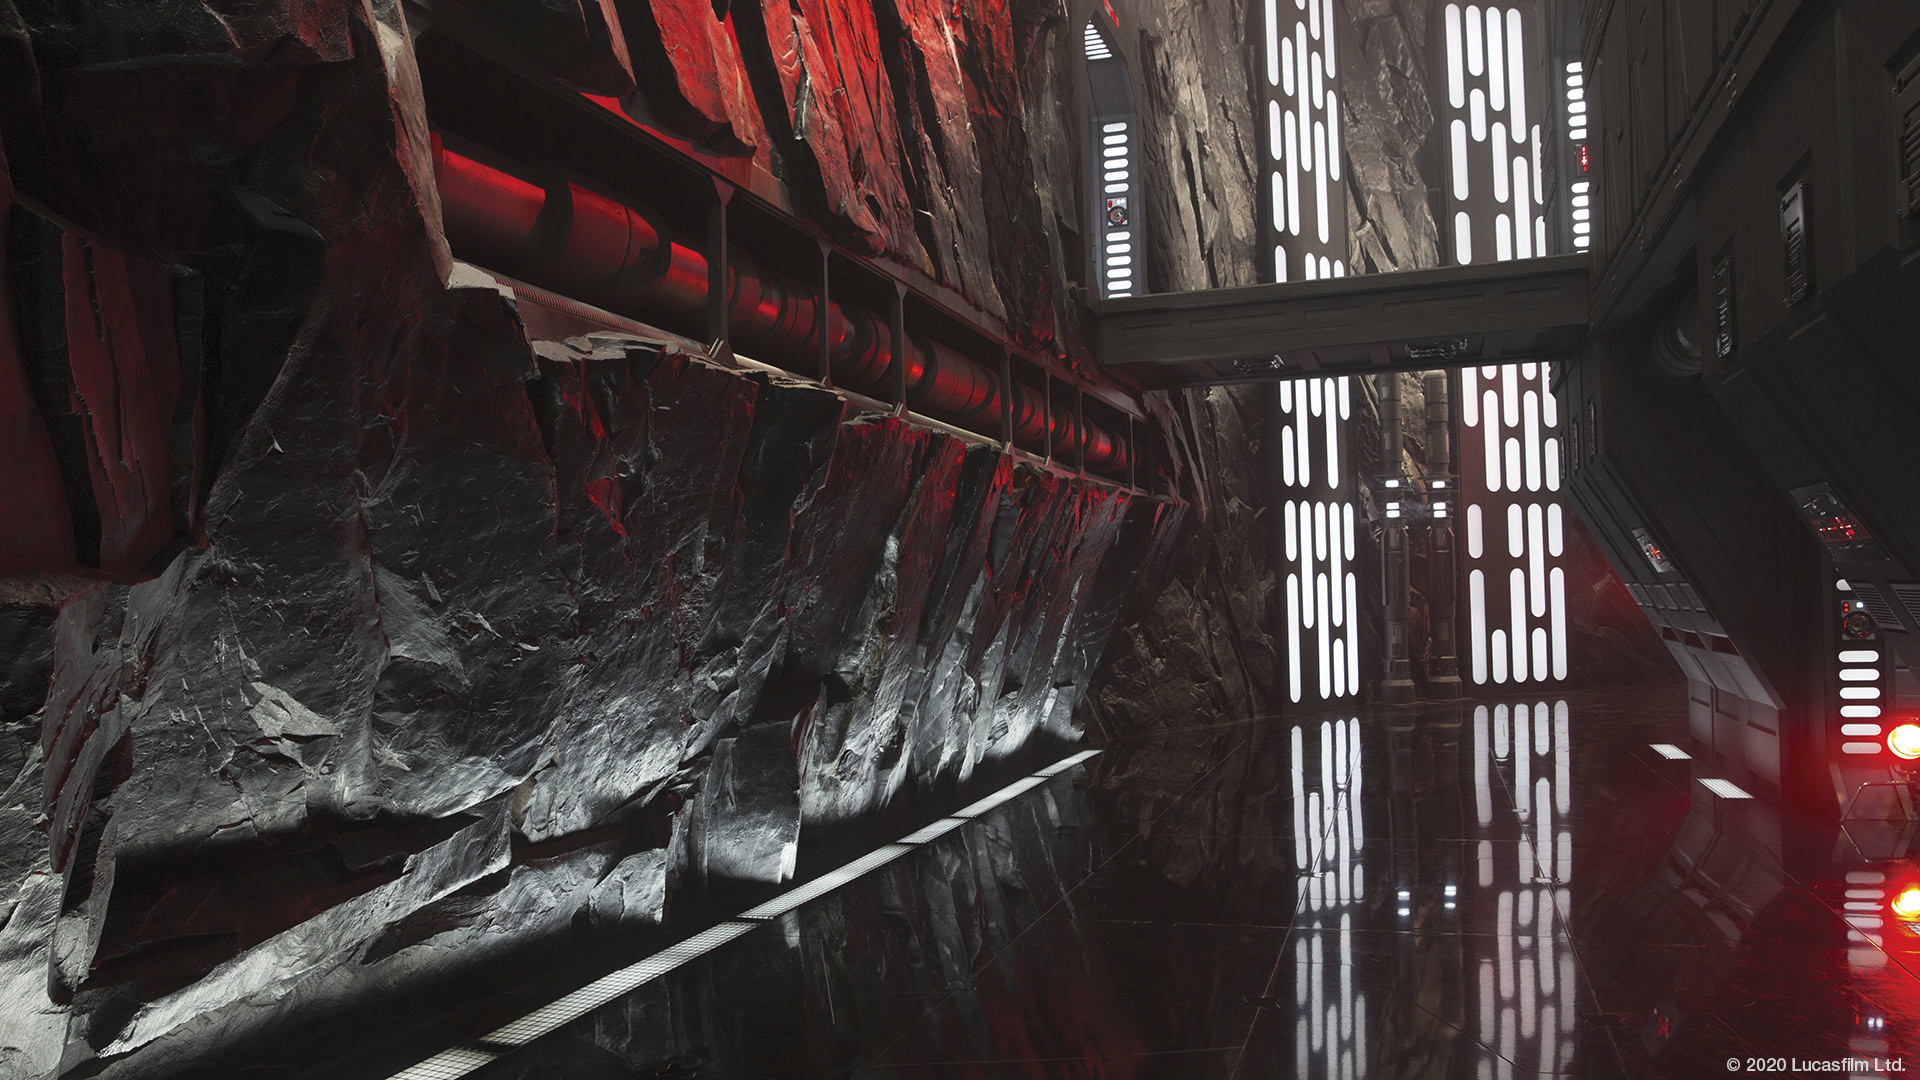 Star Wars virtual background: Starkiller base